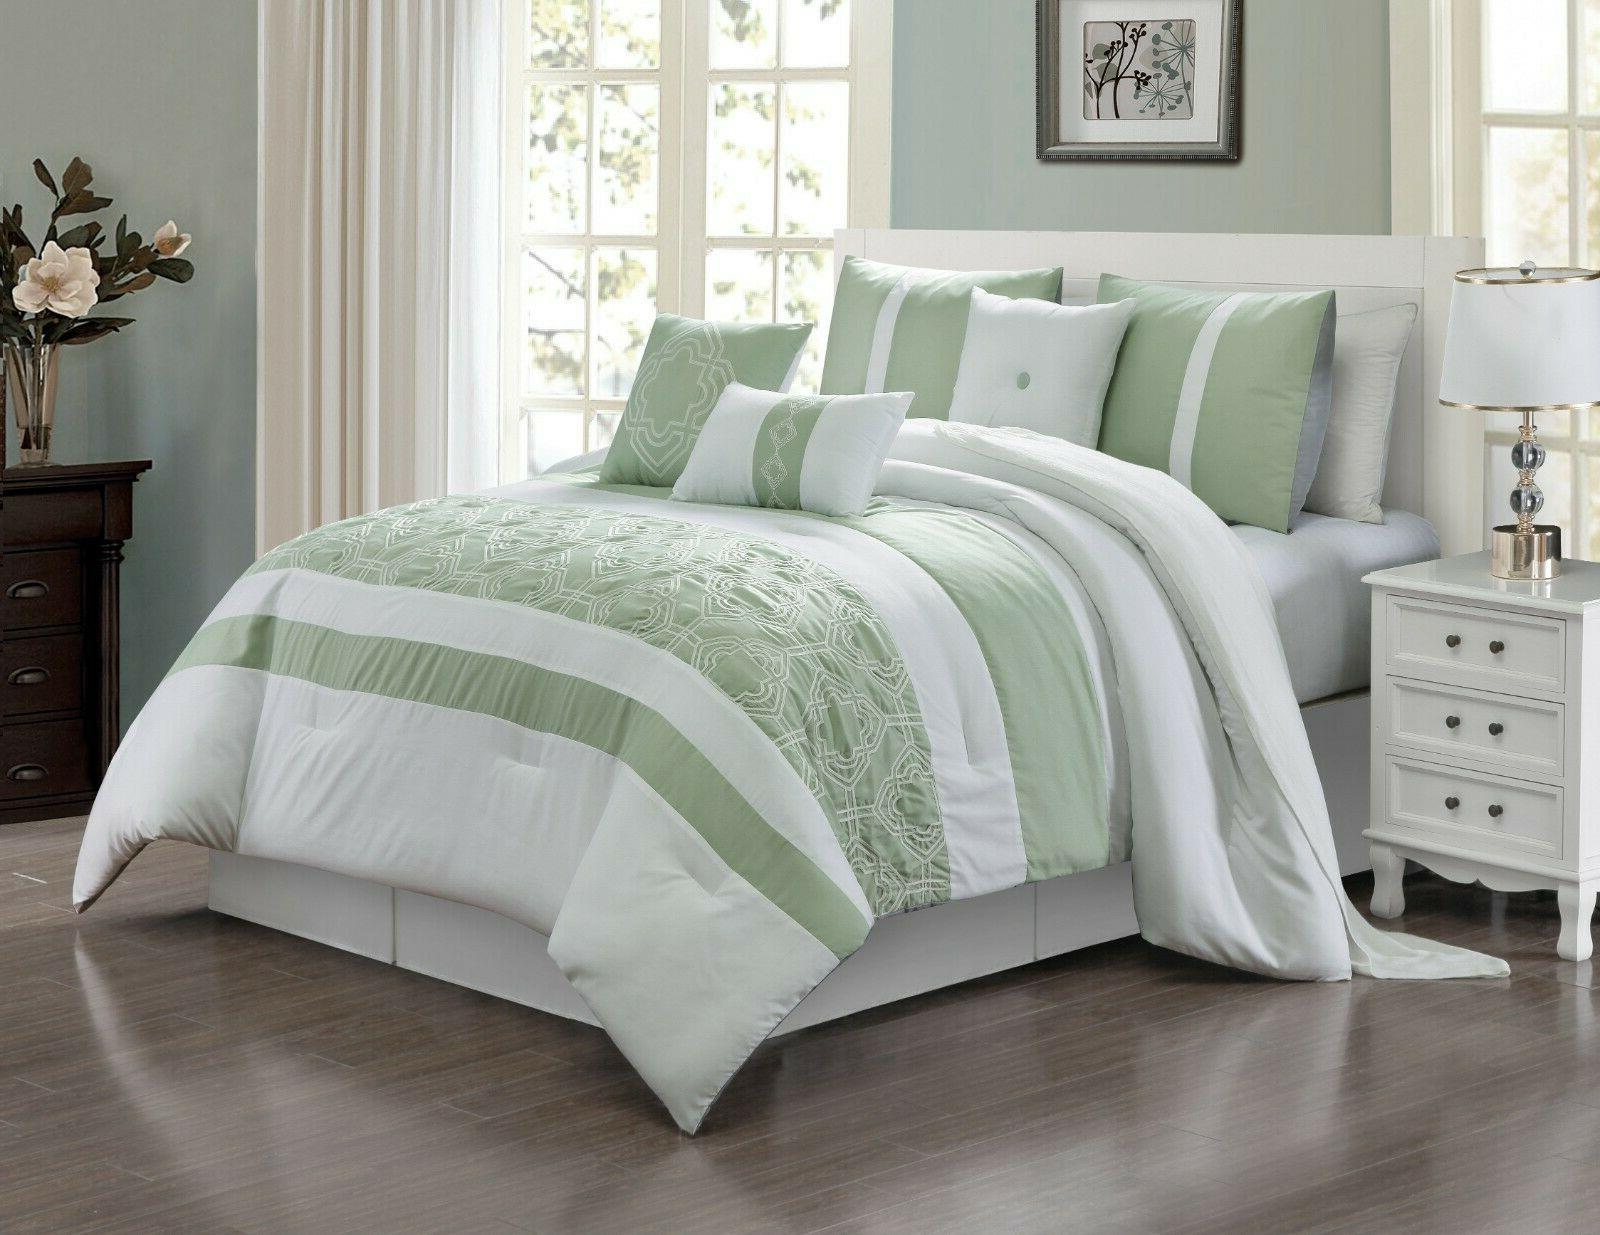 Queen Size Bed Comforter 7 Piece Bedding Sets – Ultra Soft